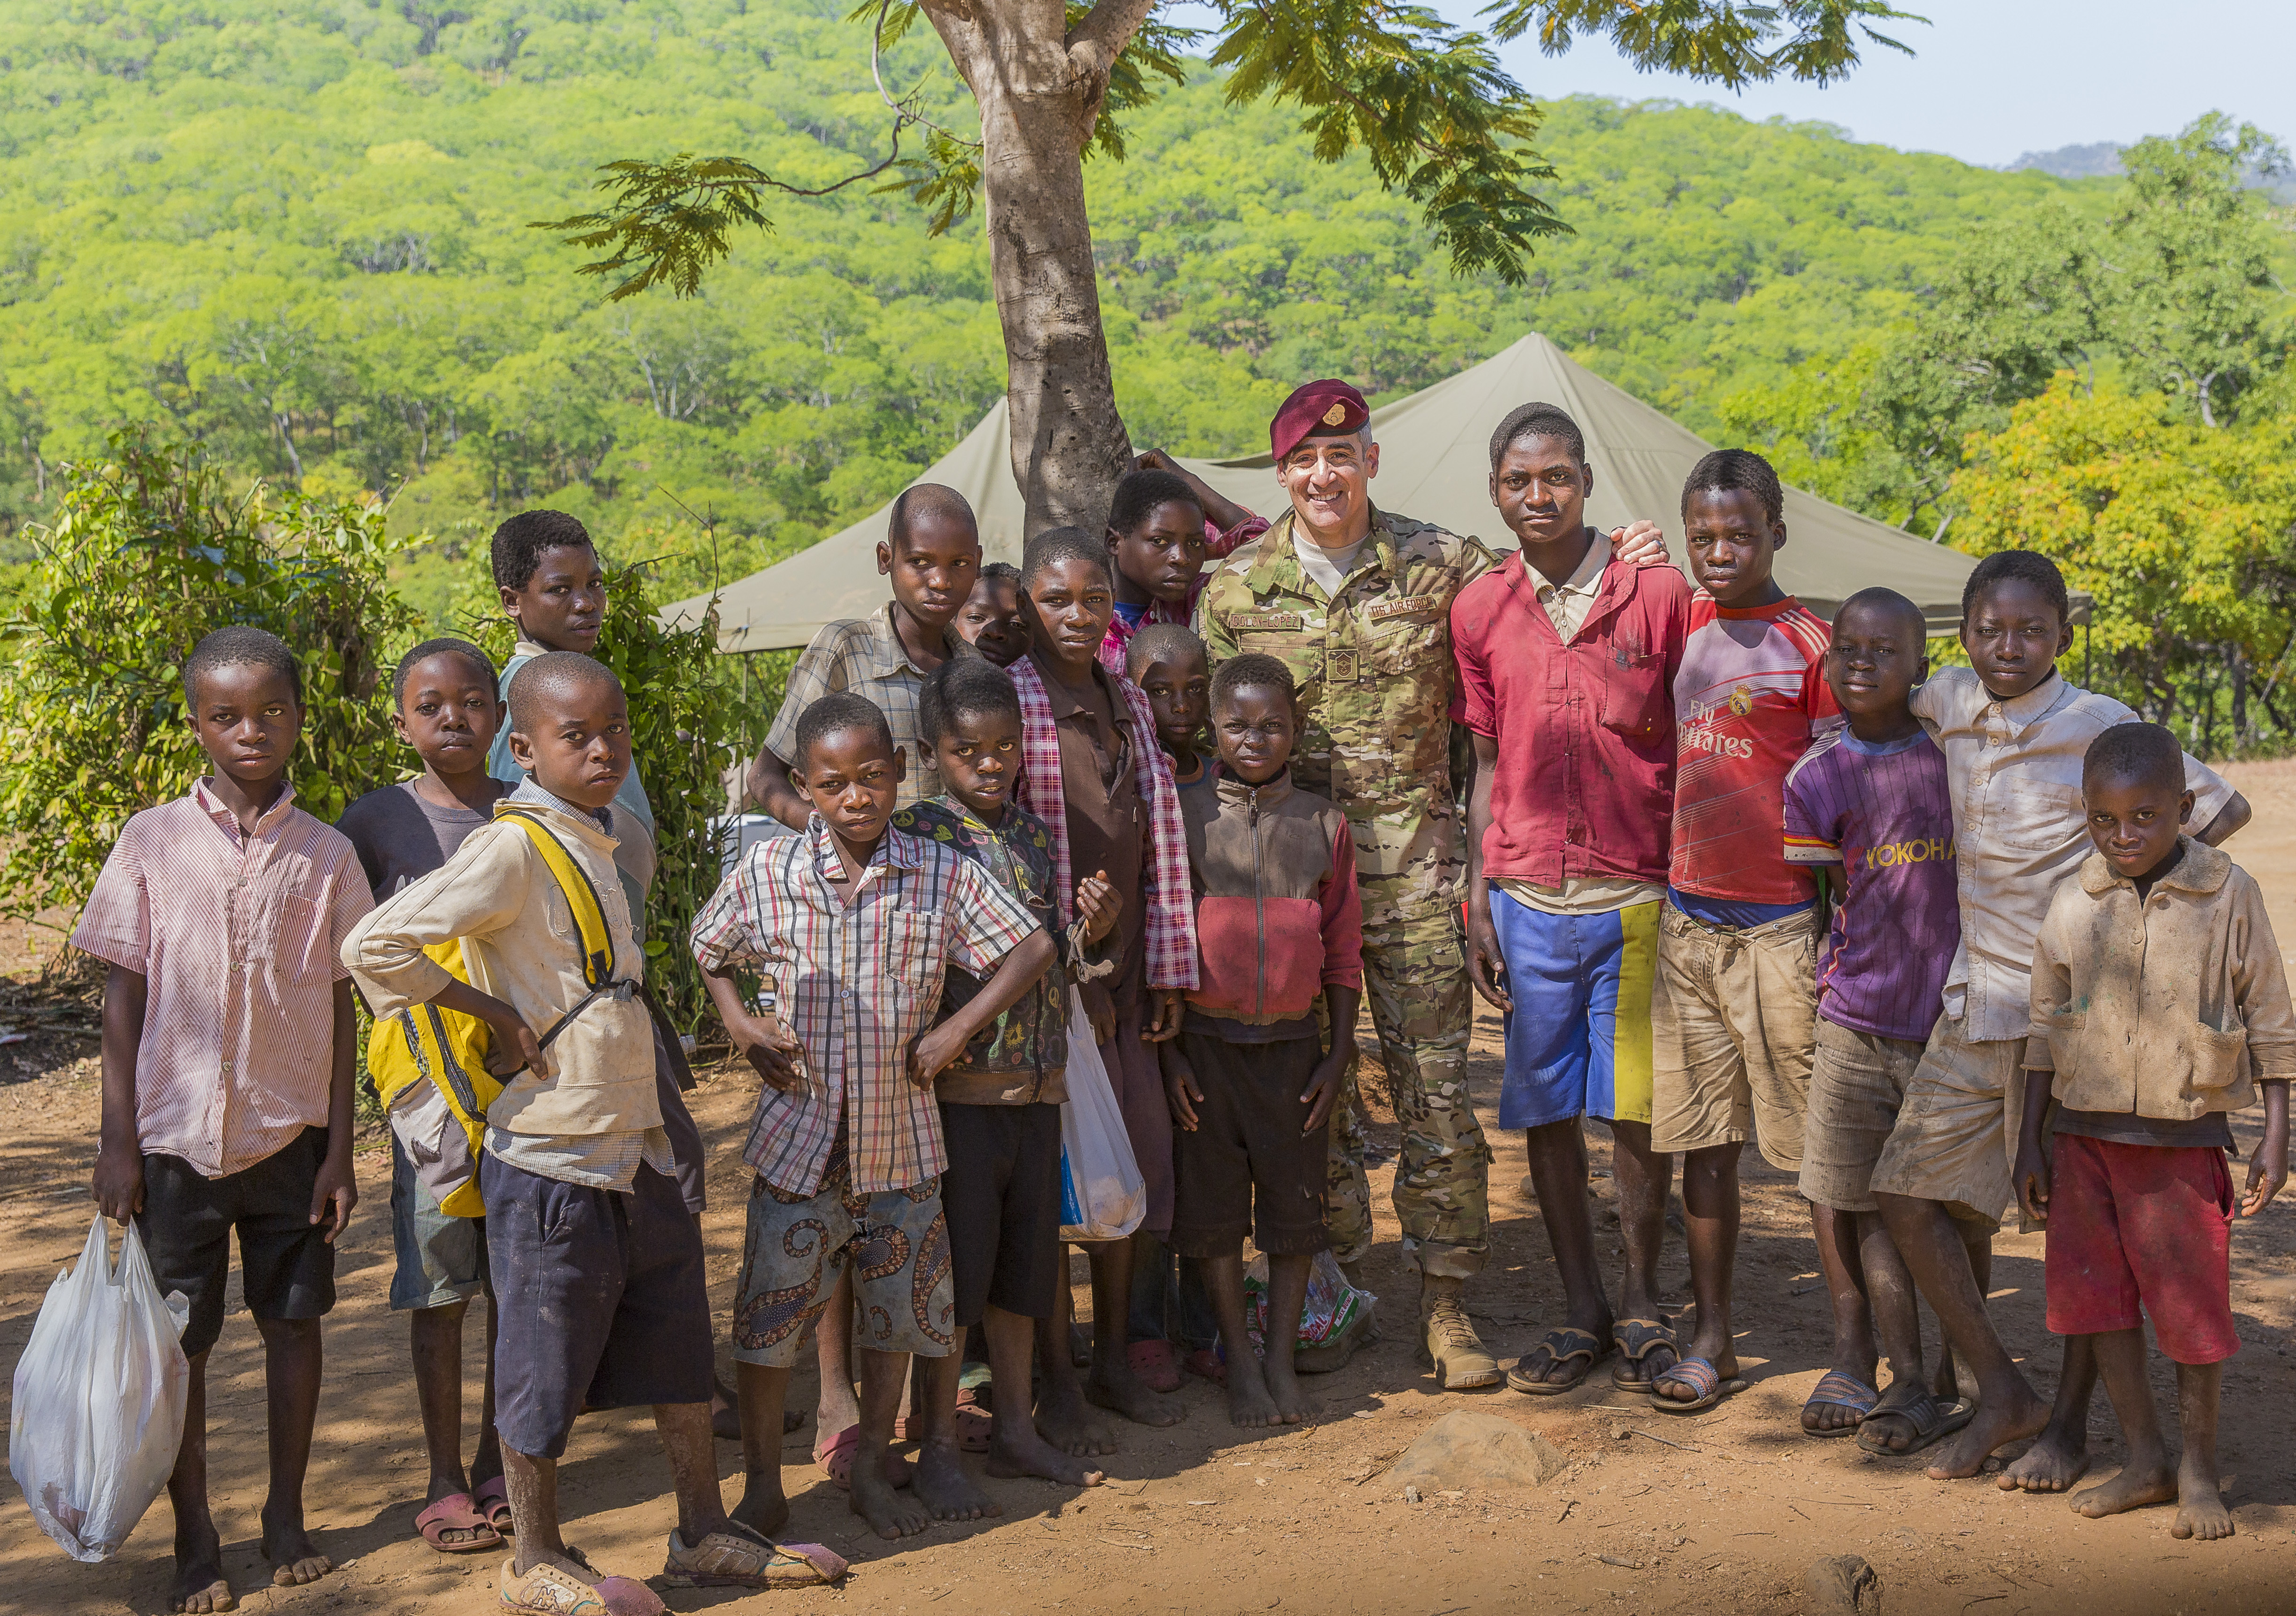 U.S. Africa Command Senior Enlisted Leader Command Chief Master Sgt. Ramon Colon-Lopez takes a moment to say hello to local children during the Malawi Battalion Training Course graduation in Malawi, Africa, May 31, 2018. Colon-Lopez travelled to Malawi to meet with the Malawi Defence Force, engaging with both senior officer and enlisted leadership as part of a three-day tour. The visit included a follow-up on issues addressed by the MDF during the Africa Senior Enlisted Leader Conference in November 2017, as well as assess the MDF's capability to train and sustain Peace Keeping Operations Forces.